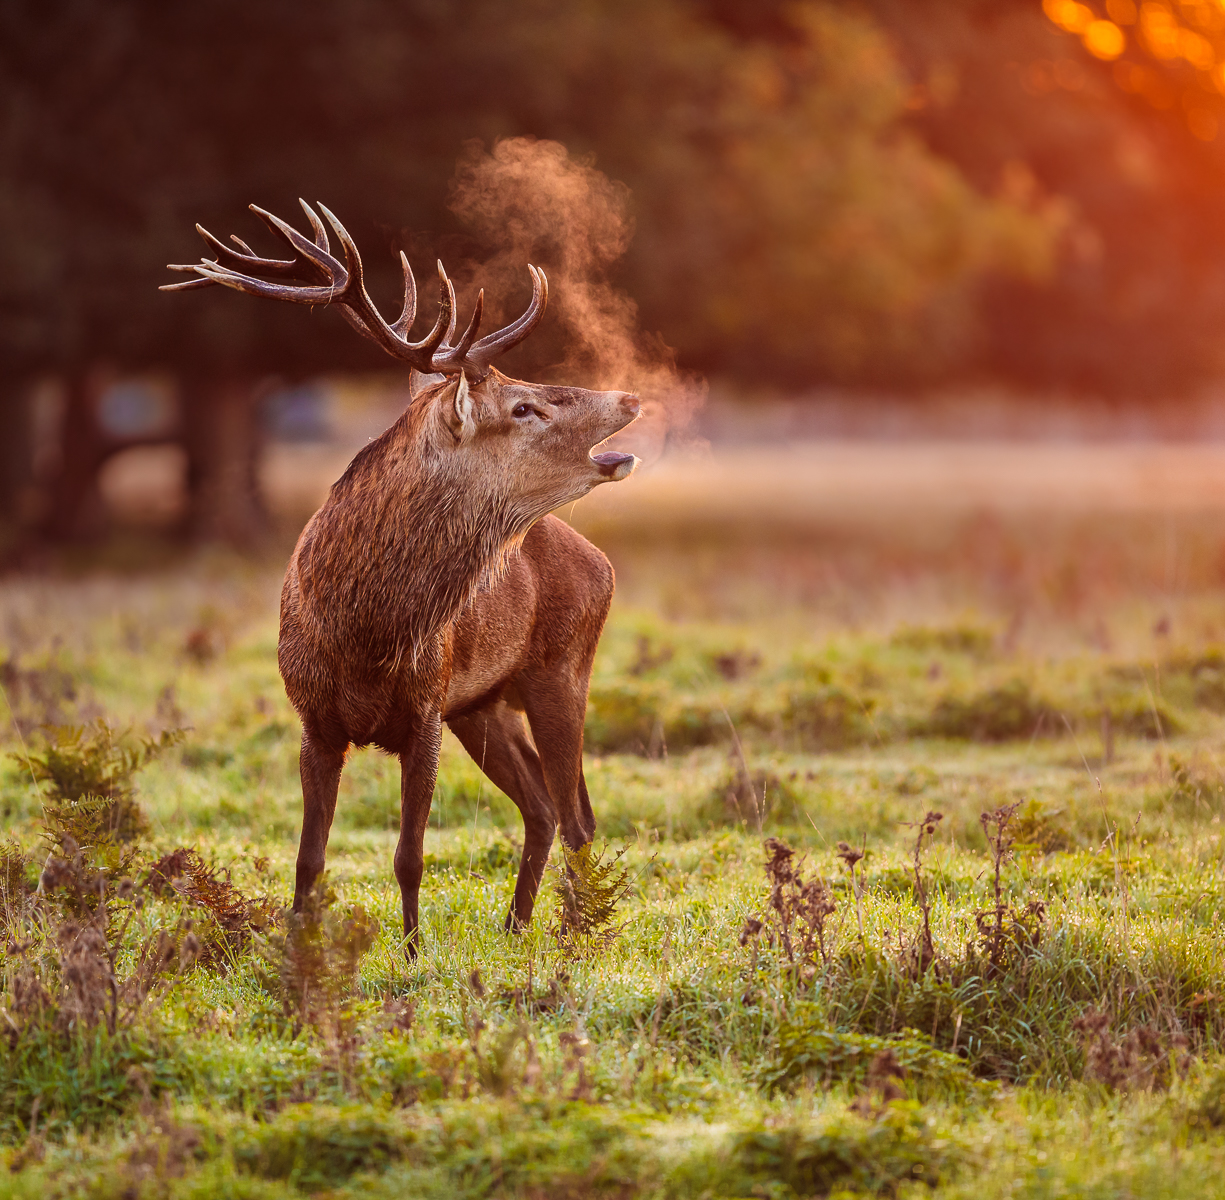 Sunrise Stag Breathing